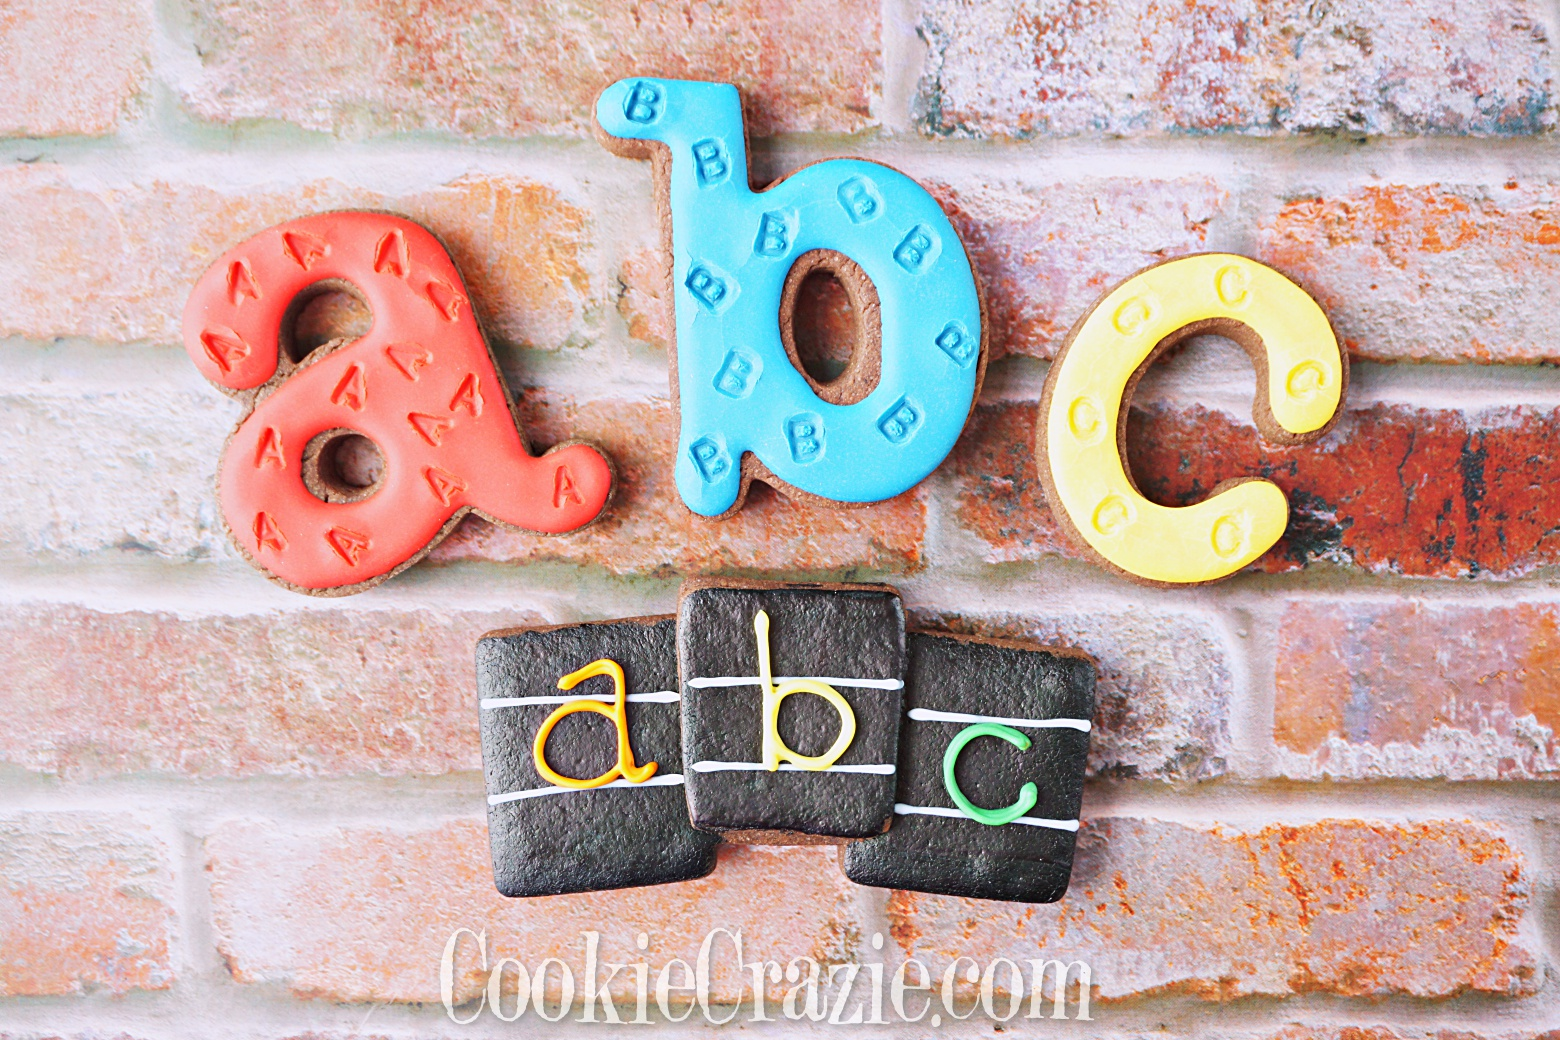 ABC Trio Decorated Sugar Cookie YouTube video  HERE